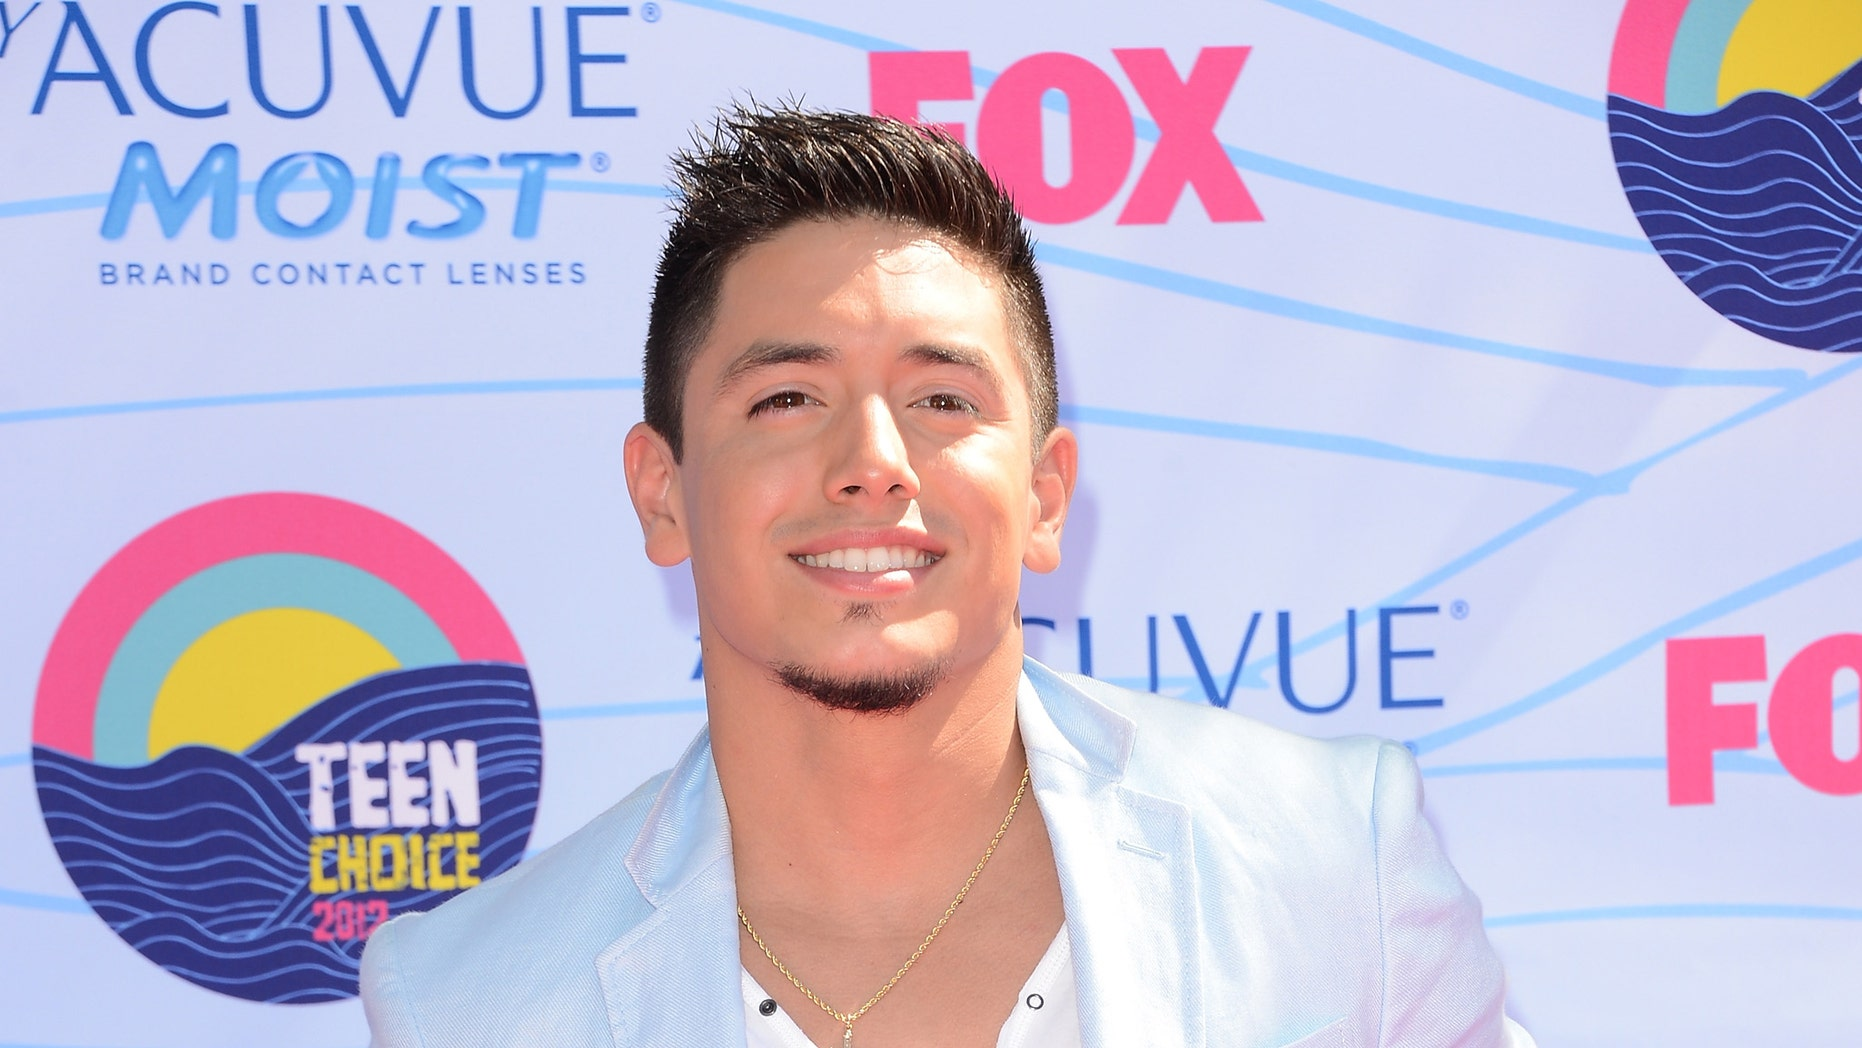 UNIVERSAL CITY, CA - JULY 22:  Singer Stefano Langone arrives at the 2012 Teen Choice Awards at Gibson Amphitheatre on July 22, 2012 in Universal City, California.  (Photo by Jason Merritt/Getty Images)